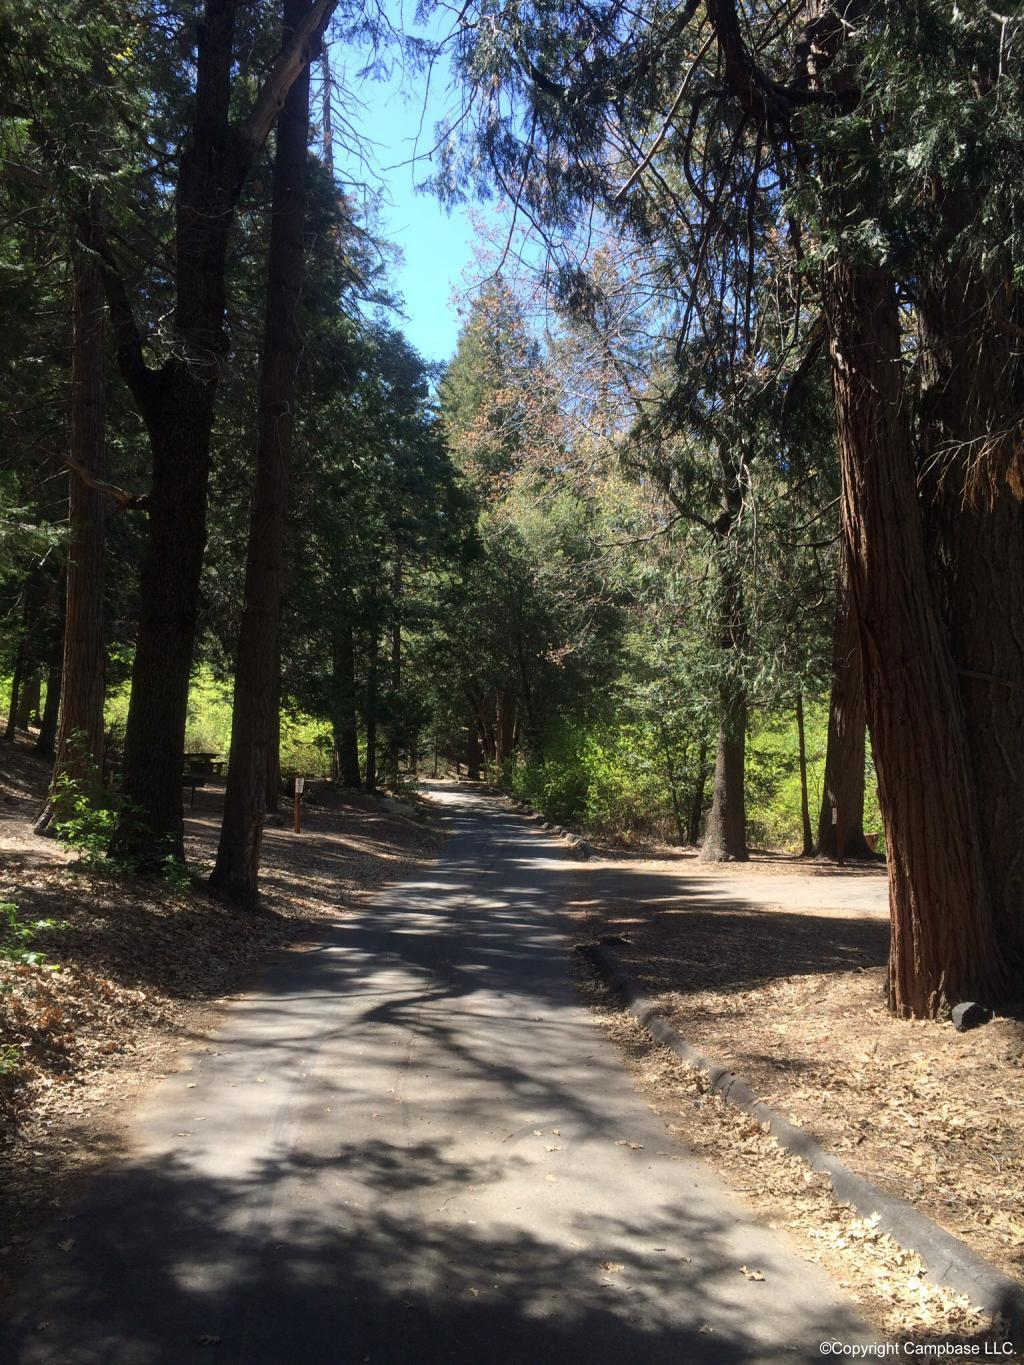 Fry Creek Campground Palomar Mountain California